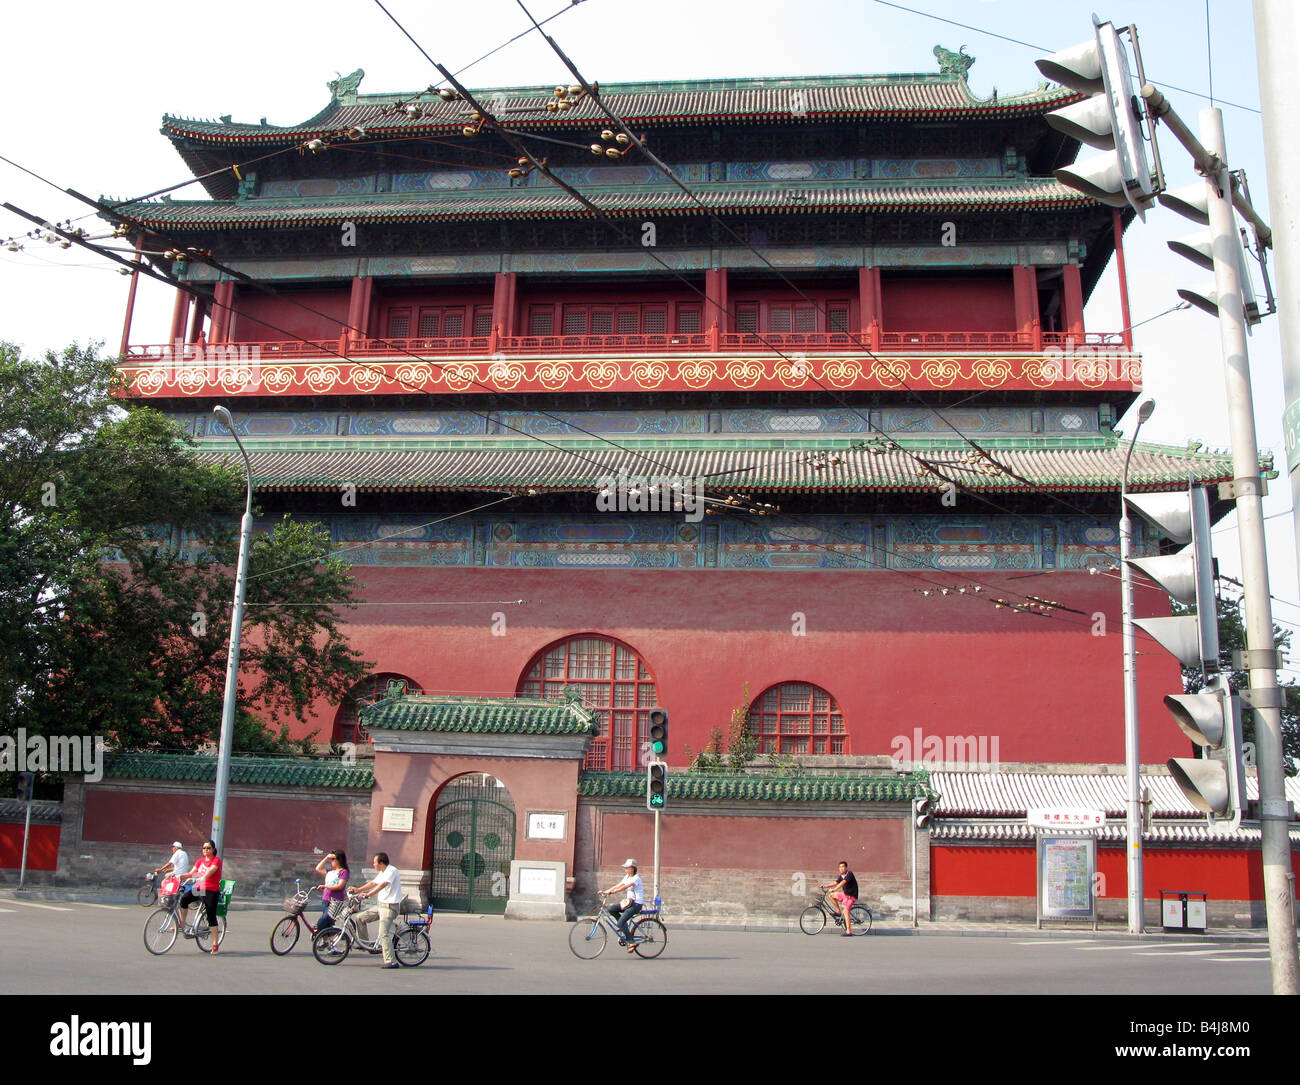 The Drum Tower built in the Yuan Dynasty near Lake Qianhai and lake Houhai in the Shichahai district of Beijing - Stock Image